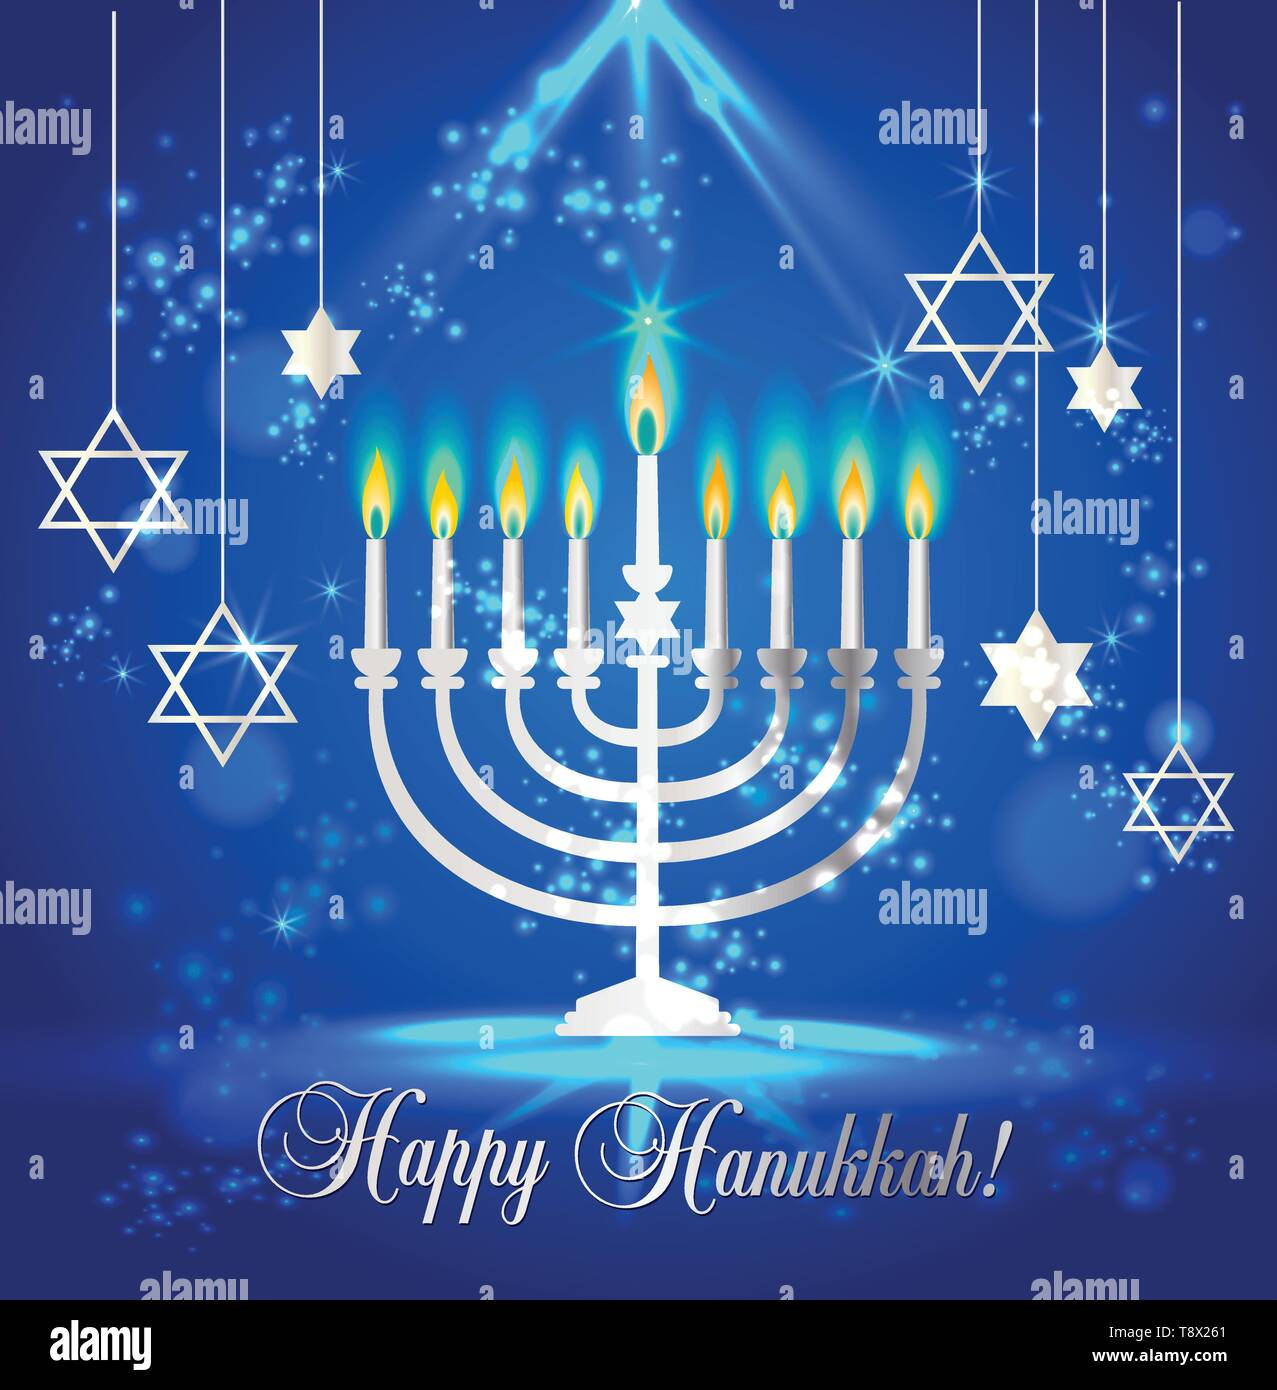 Happy Hanukkah Shining Background with Menorah, David Star and Bokeh Effect. Vector illustration on blue. - Stock Vector